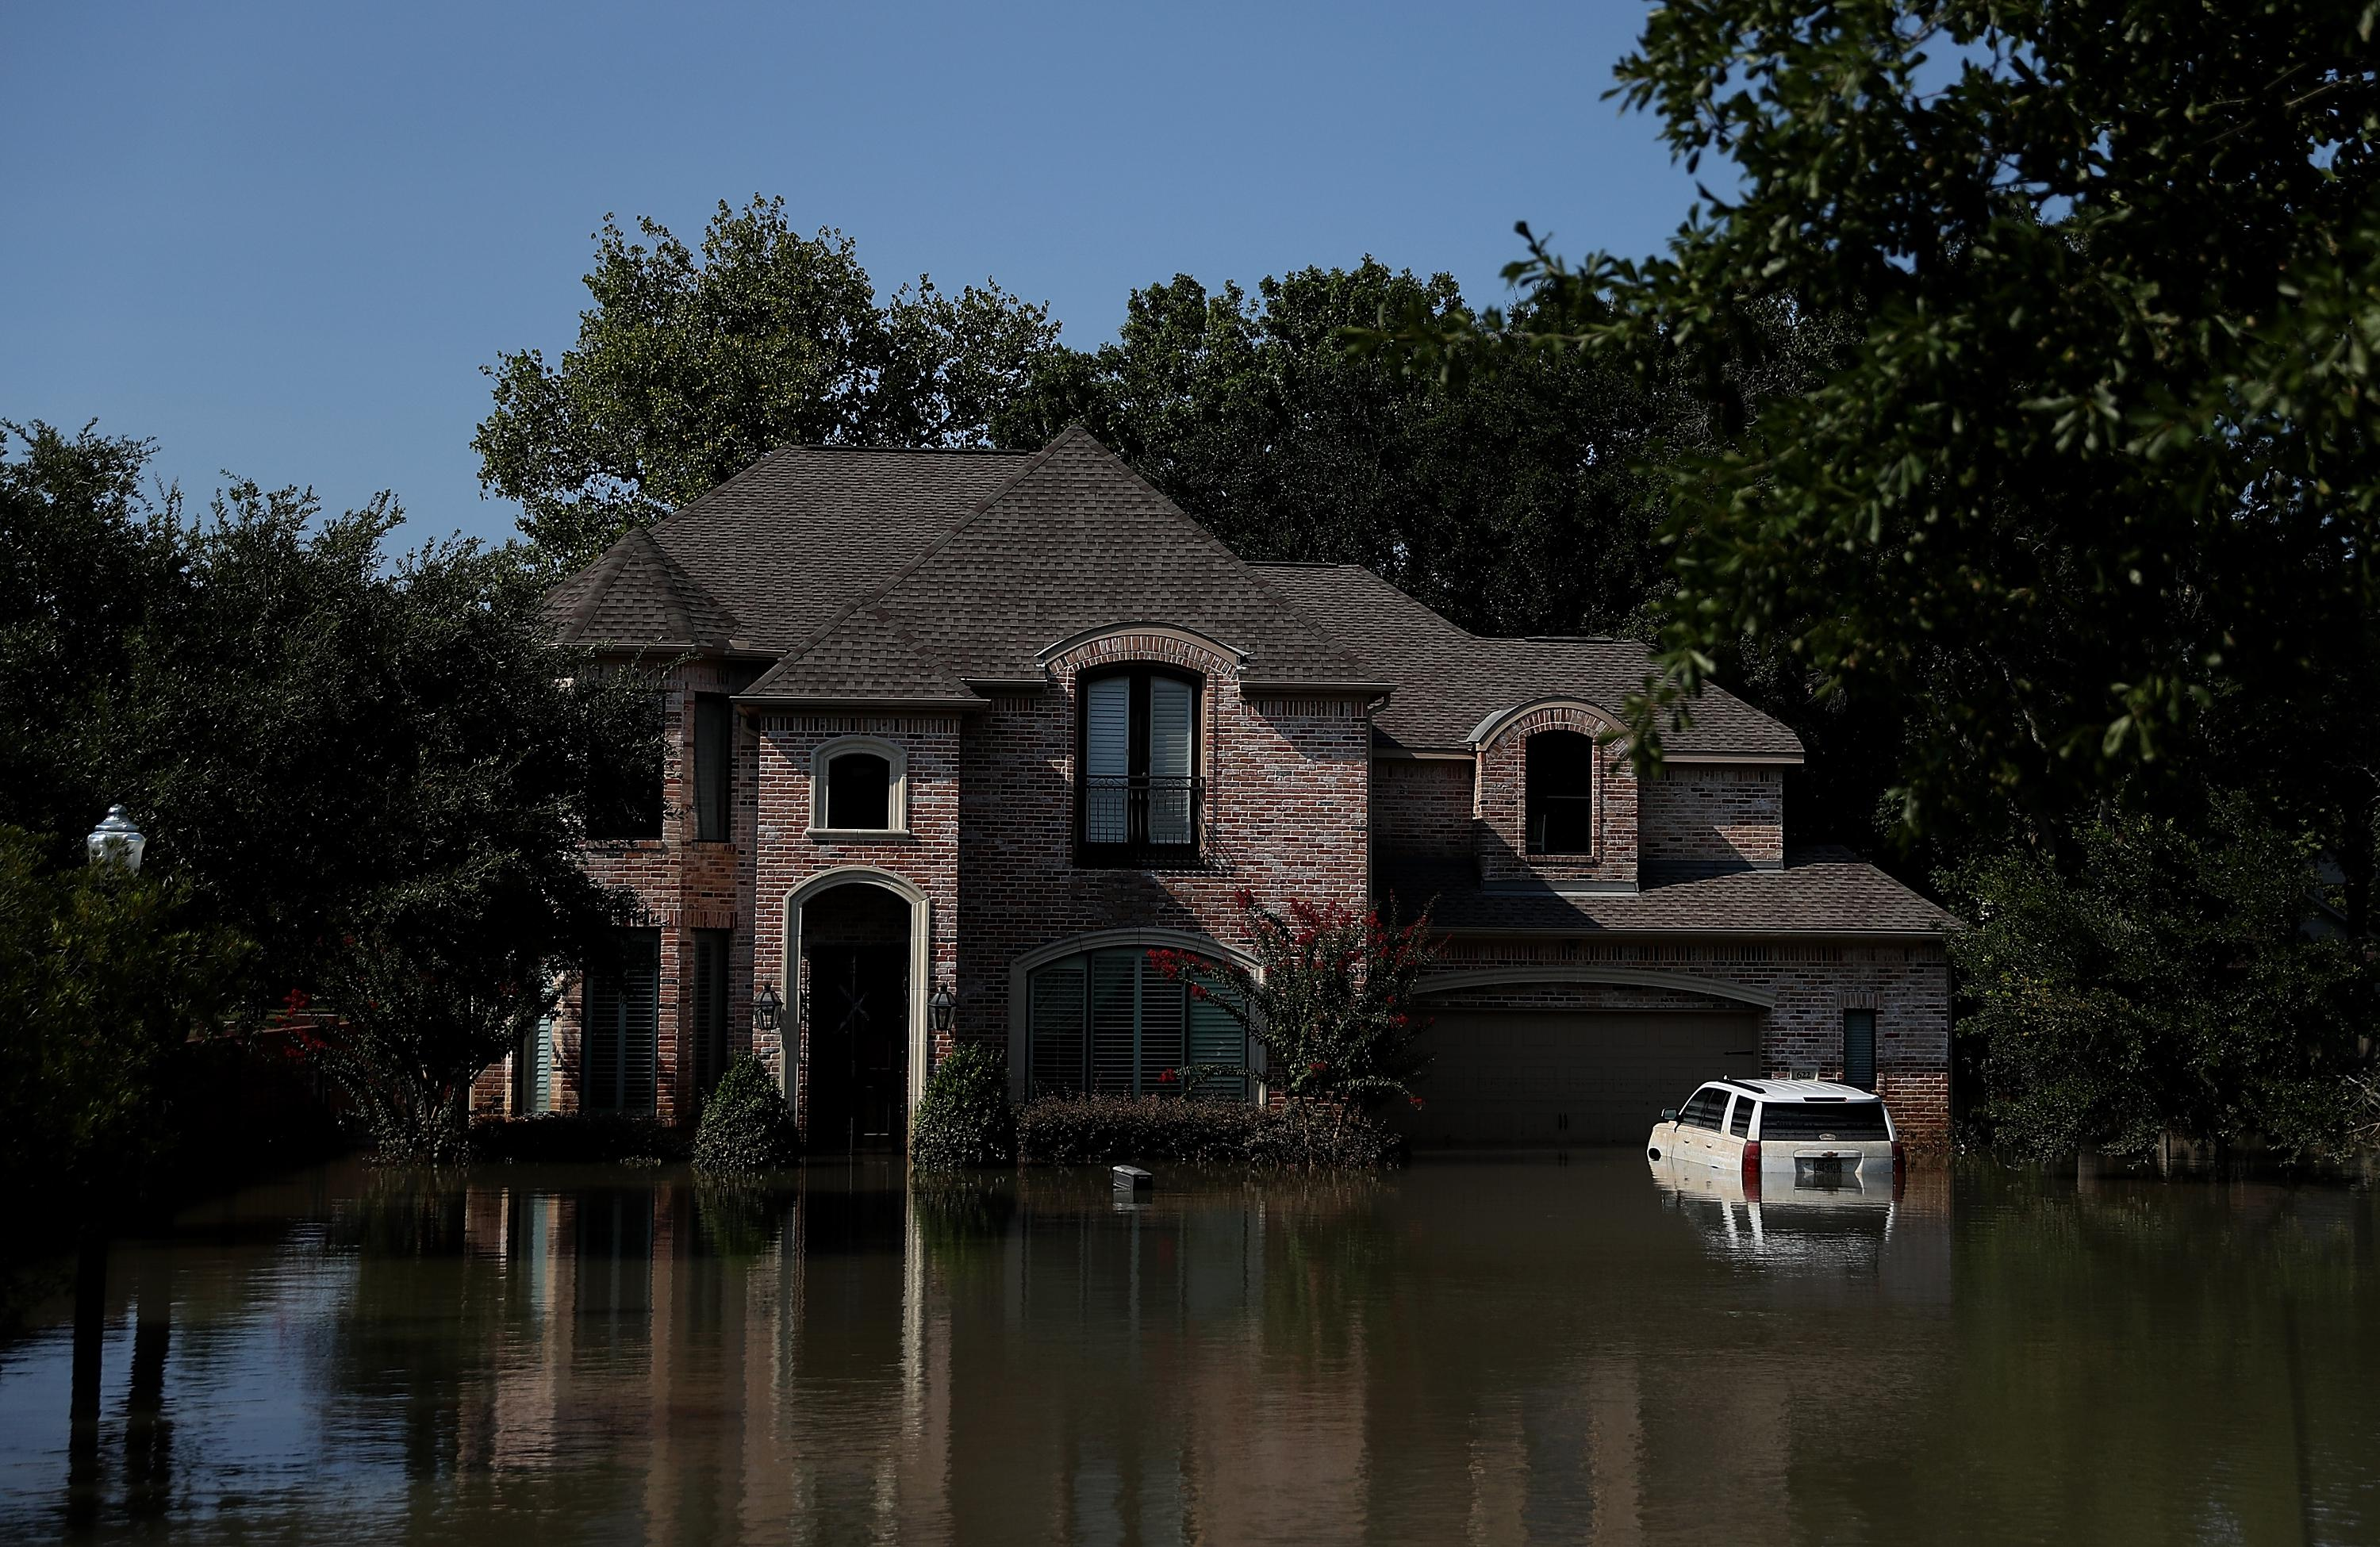 HOUSTON, TX - SEPTEMBER 06:  Floodwaters surround a home on September 6, 2017 in Houston, Texas. Over a week after Hurricane Harvey hit Southern Texas, residents are beginning the long process of recovering from the storm.  (Photo by Justin Sullivan/Getty Images)